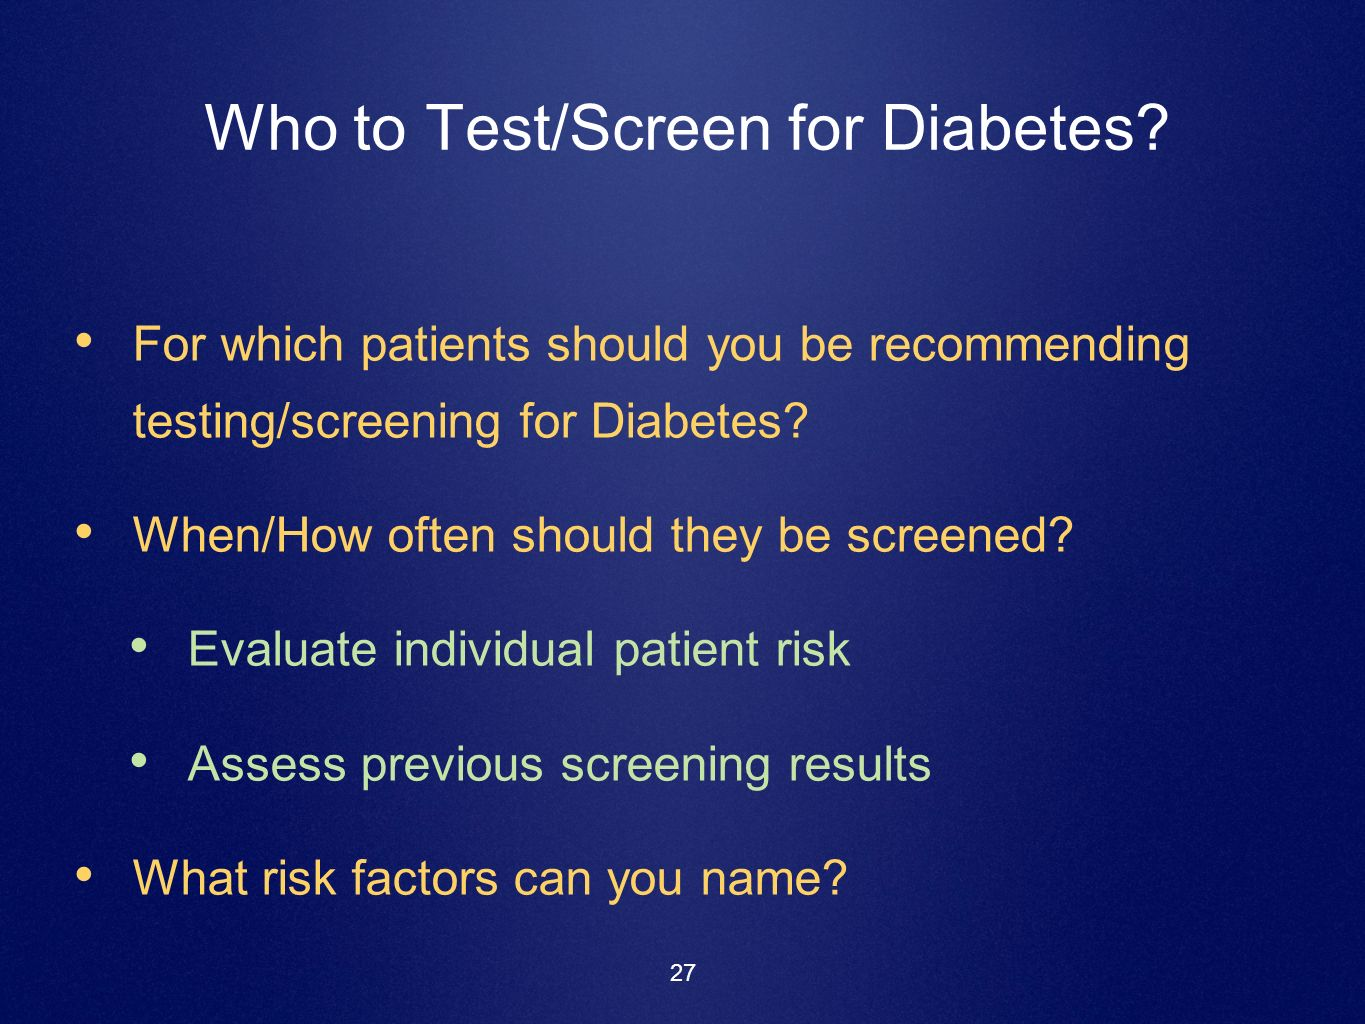 Who to Test/Screen for Diabetes